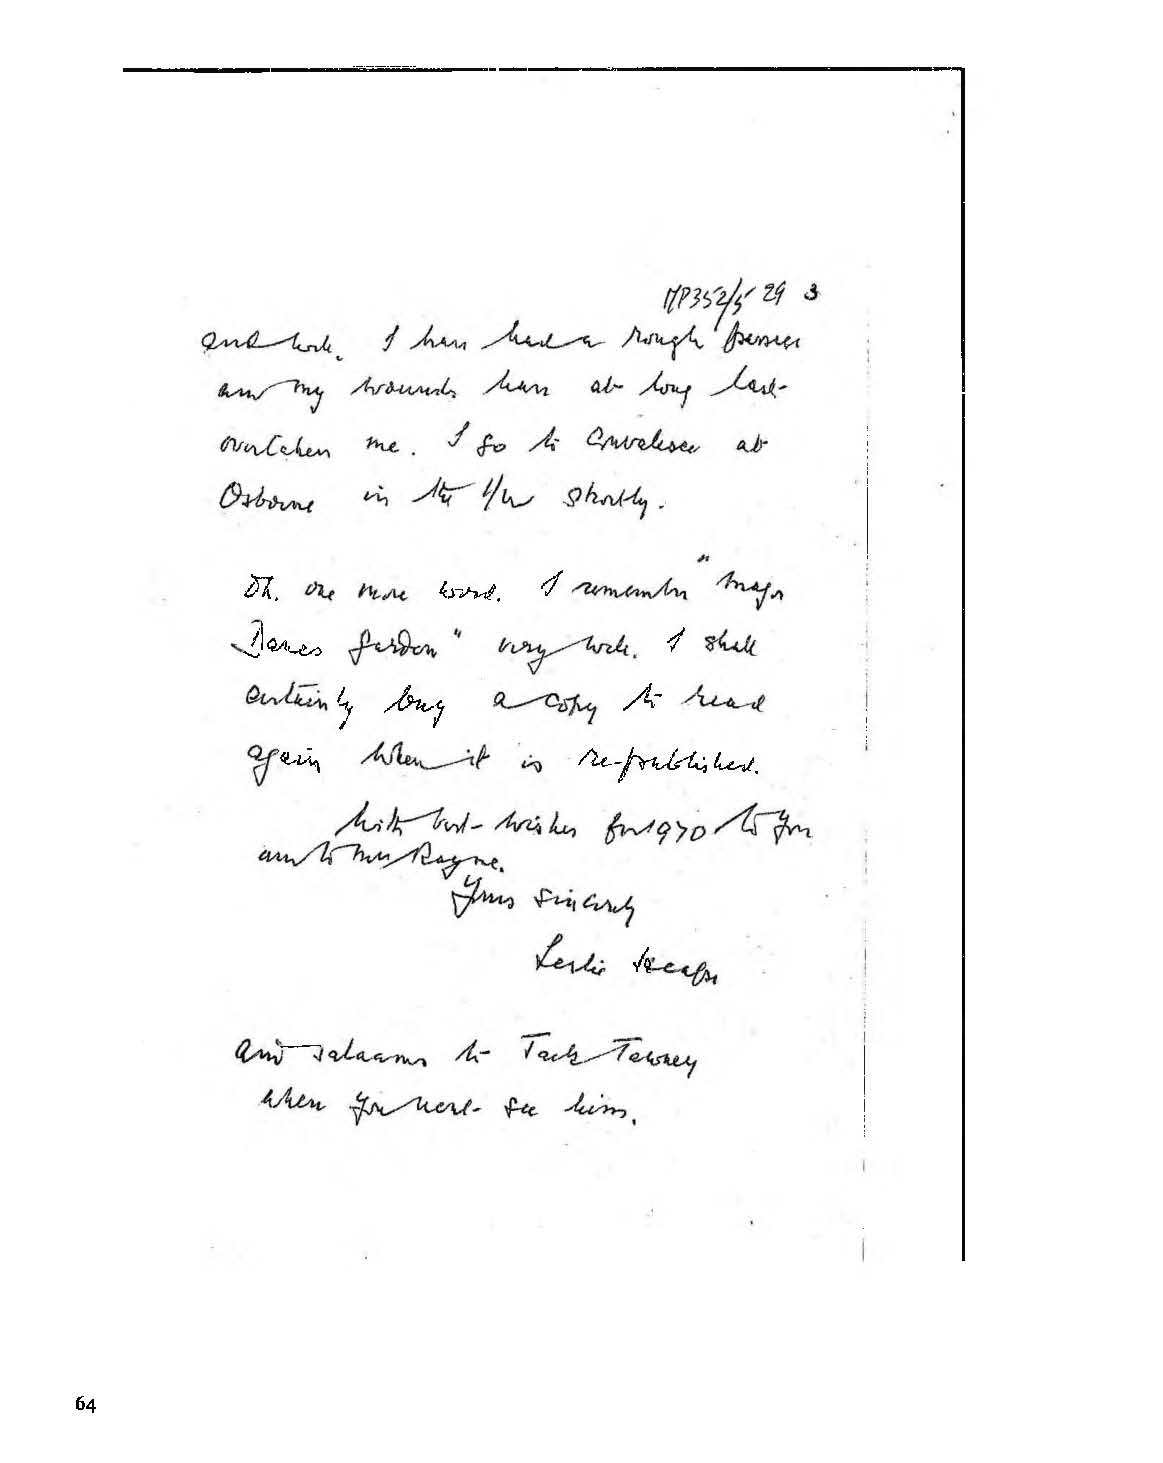 Letter to Dame Margery Perham